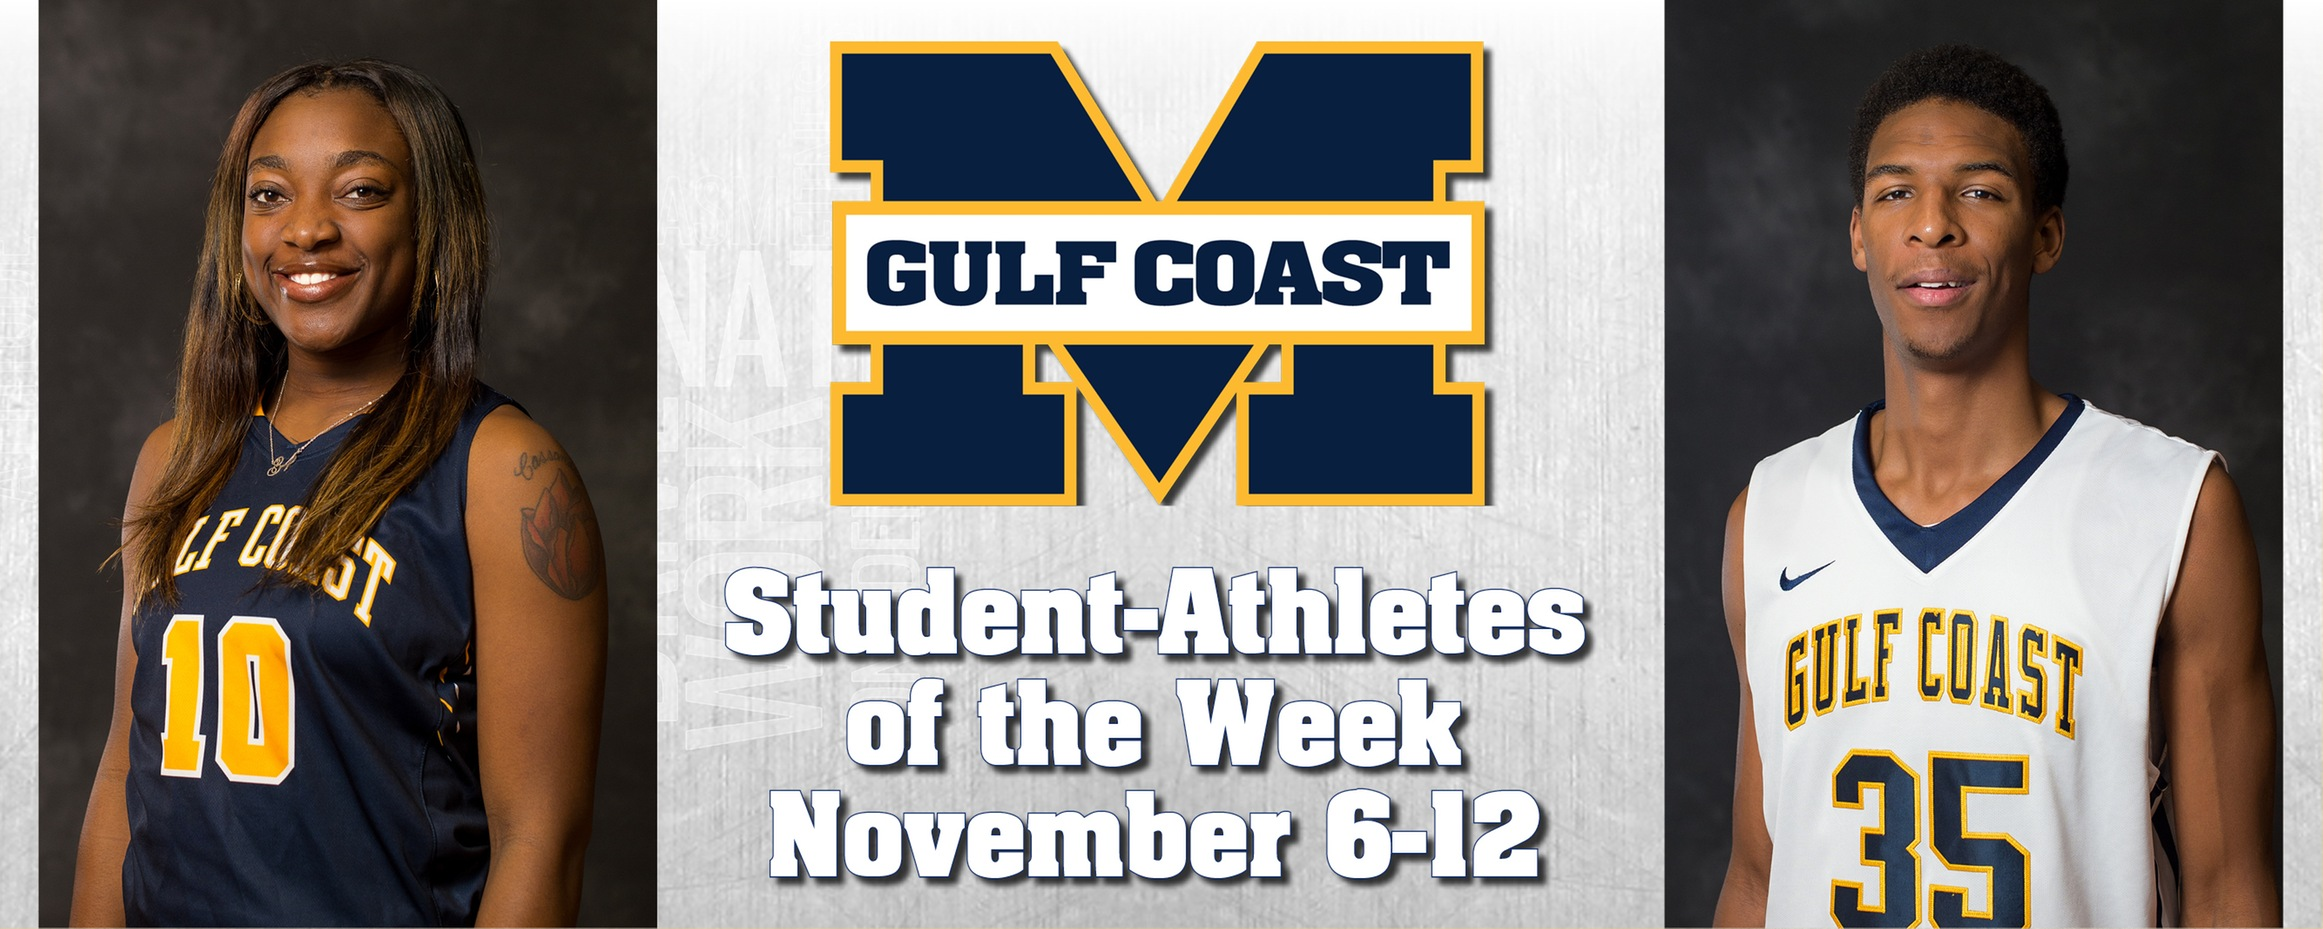 Sims, Moorer named MGCCC Student-Athletes of the Week